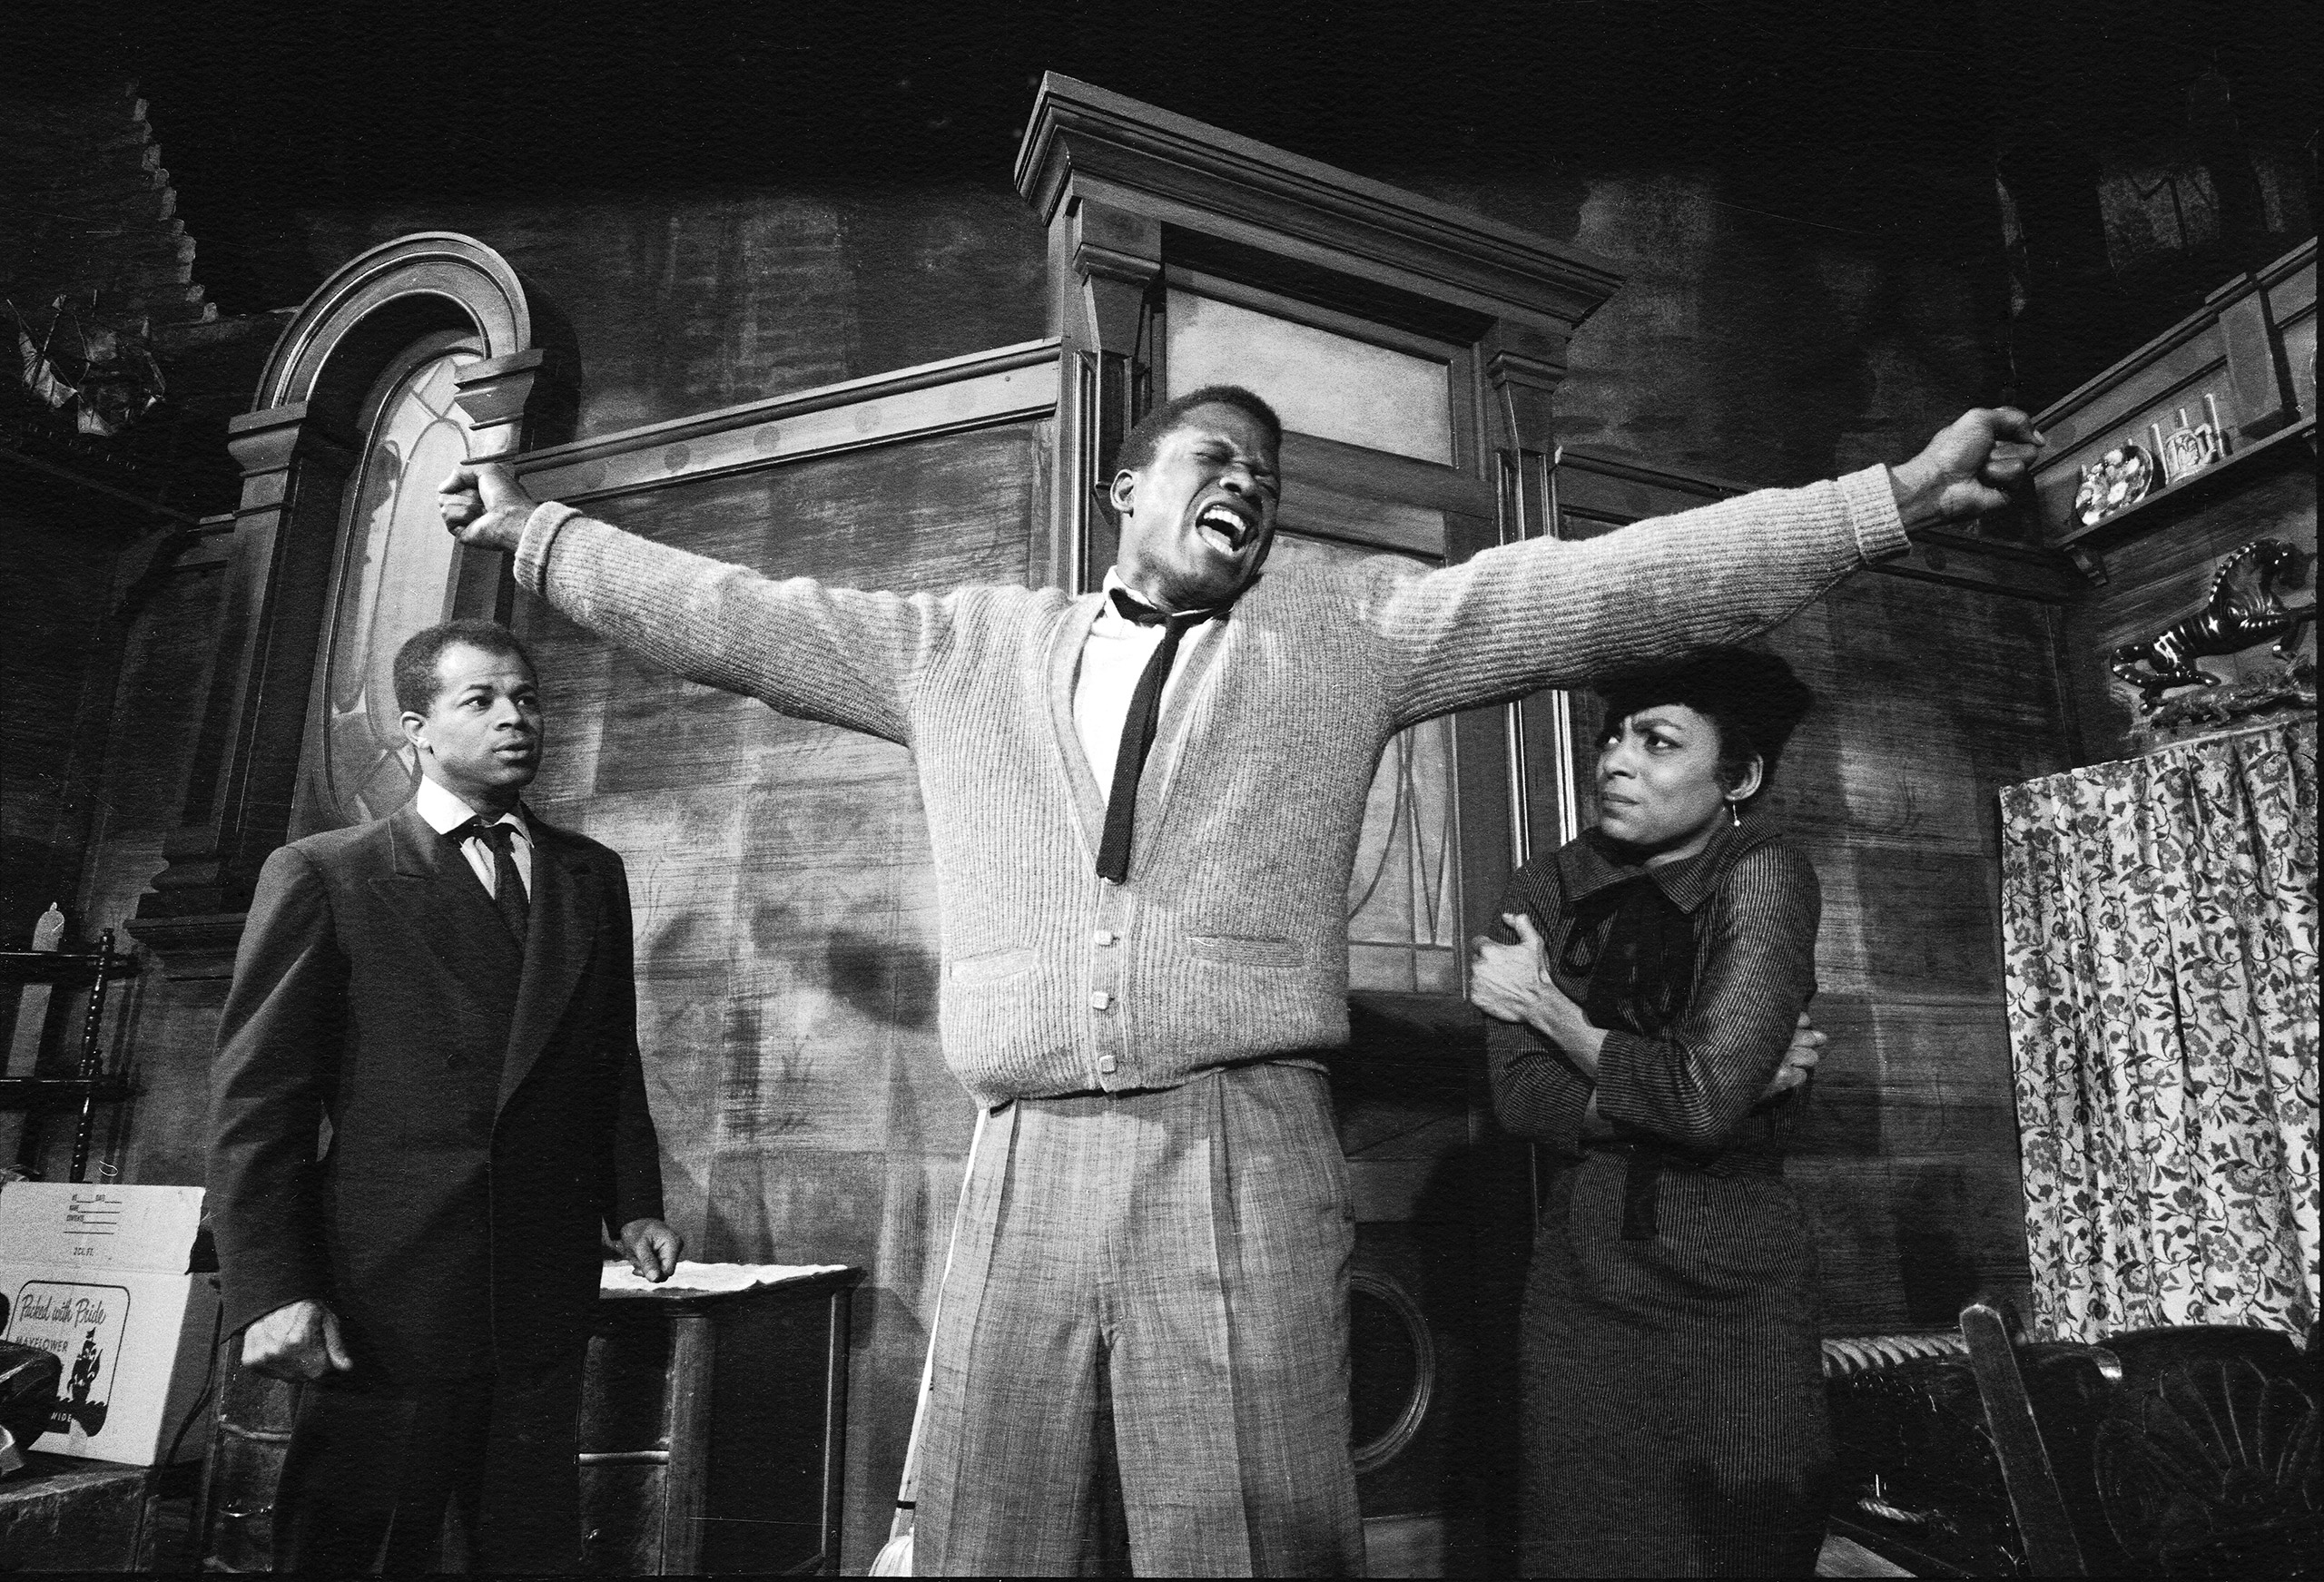 "Sidney Poitier in a dramatic scene from play ""A Raisin in the Sun"", with Ruby Dee, 1959."